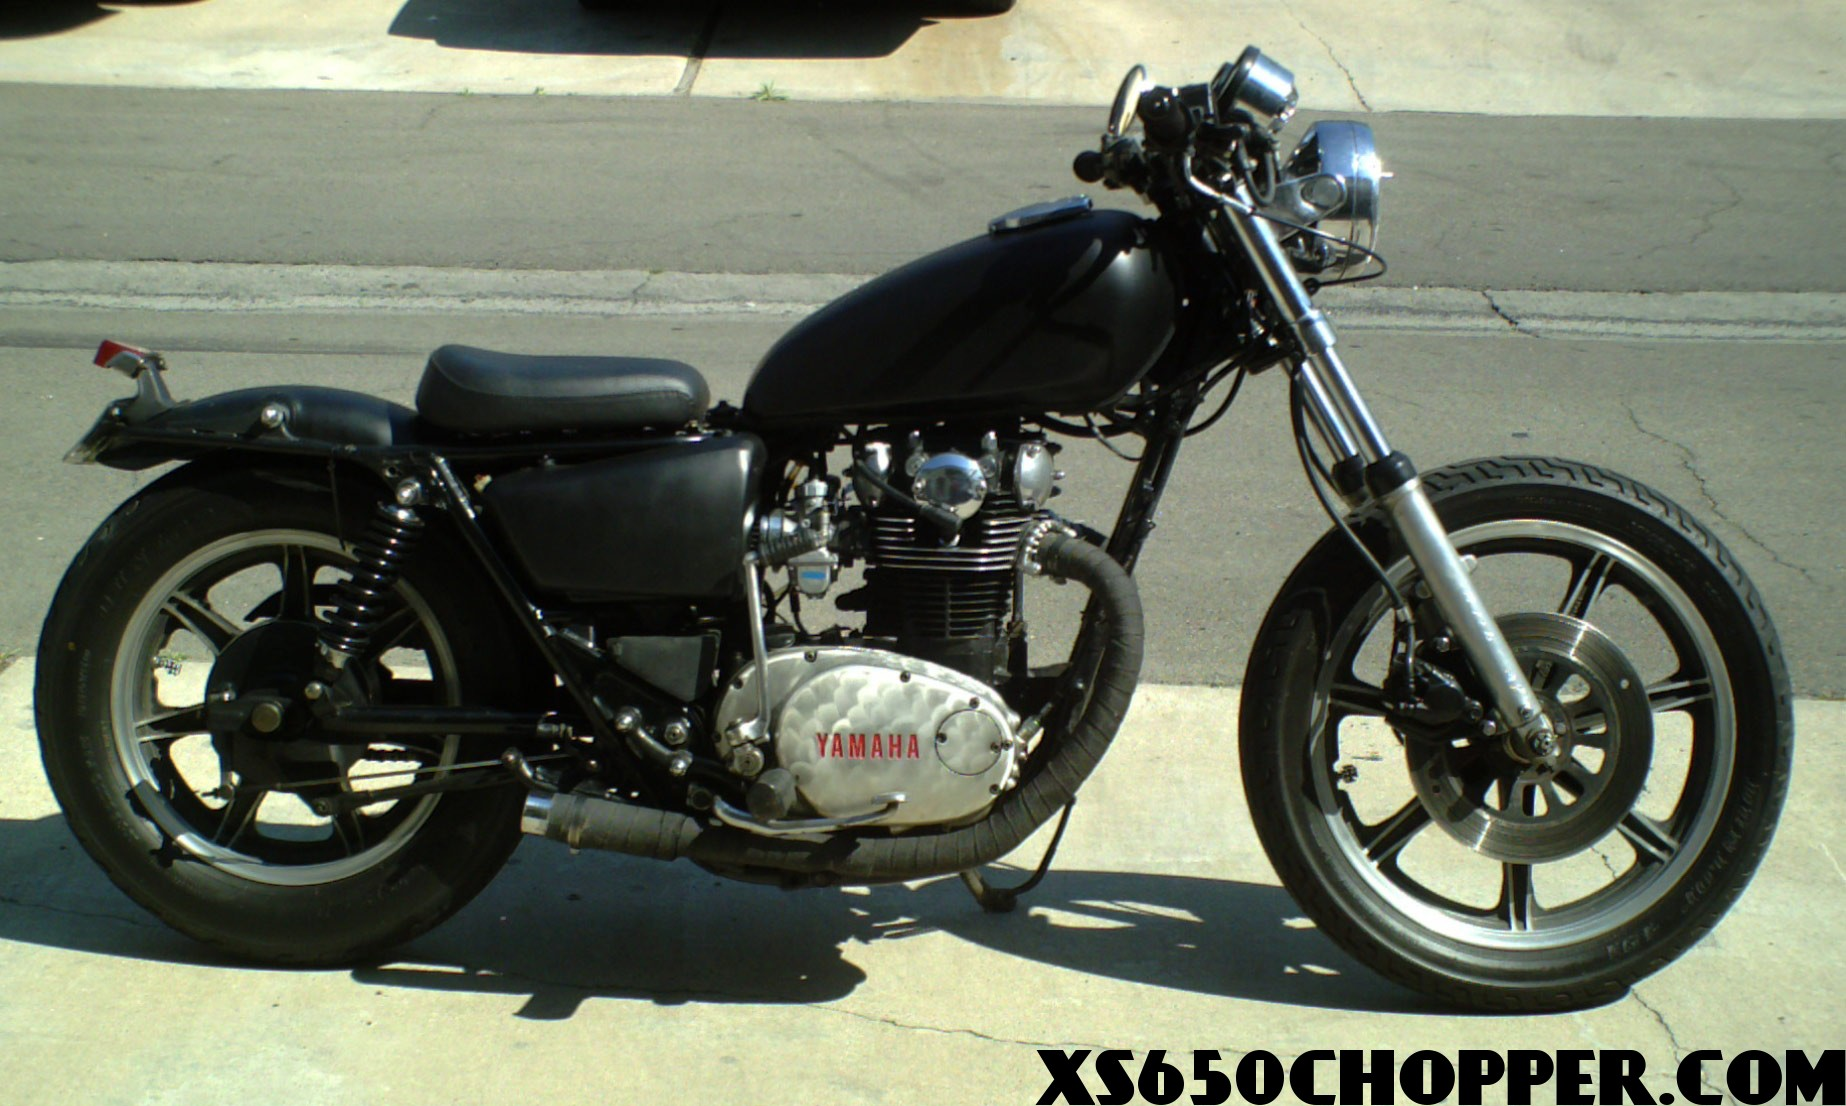 Wiring Diagram As Well Yamaha Maxim Wiring Diagram On Yamaha Xs 650